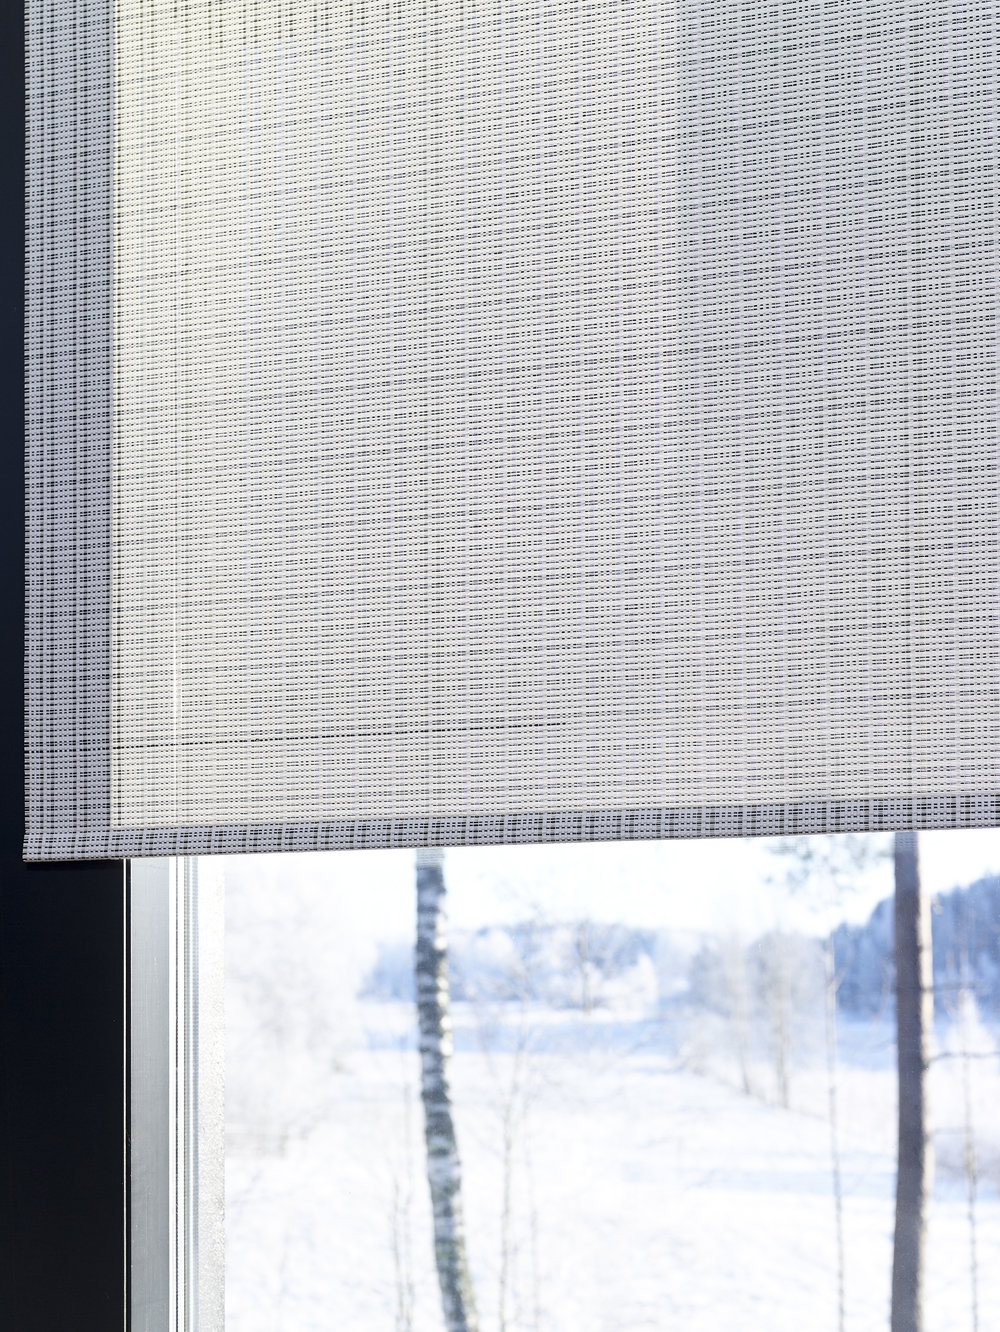 Roller blind wit chain / Cloud fabric 2140915 black-stone